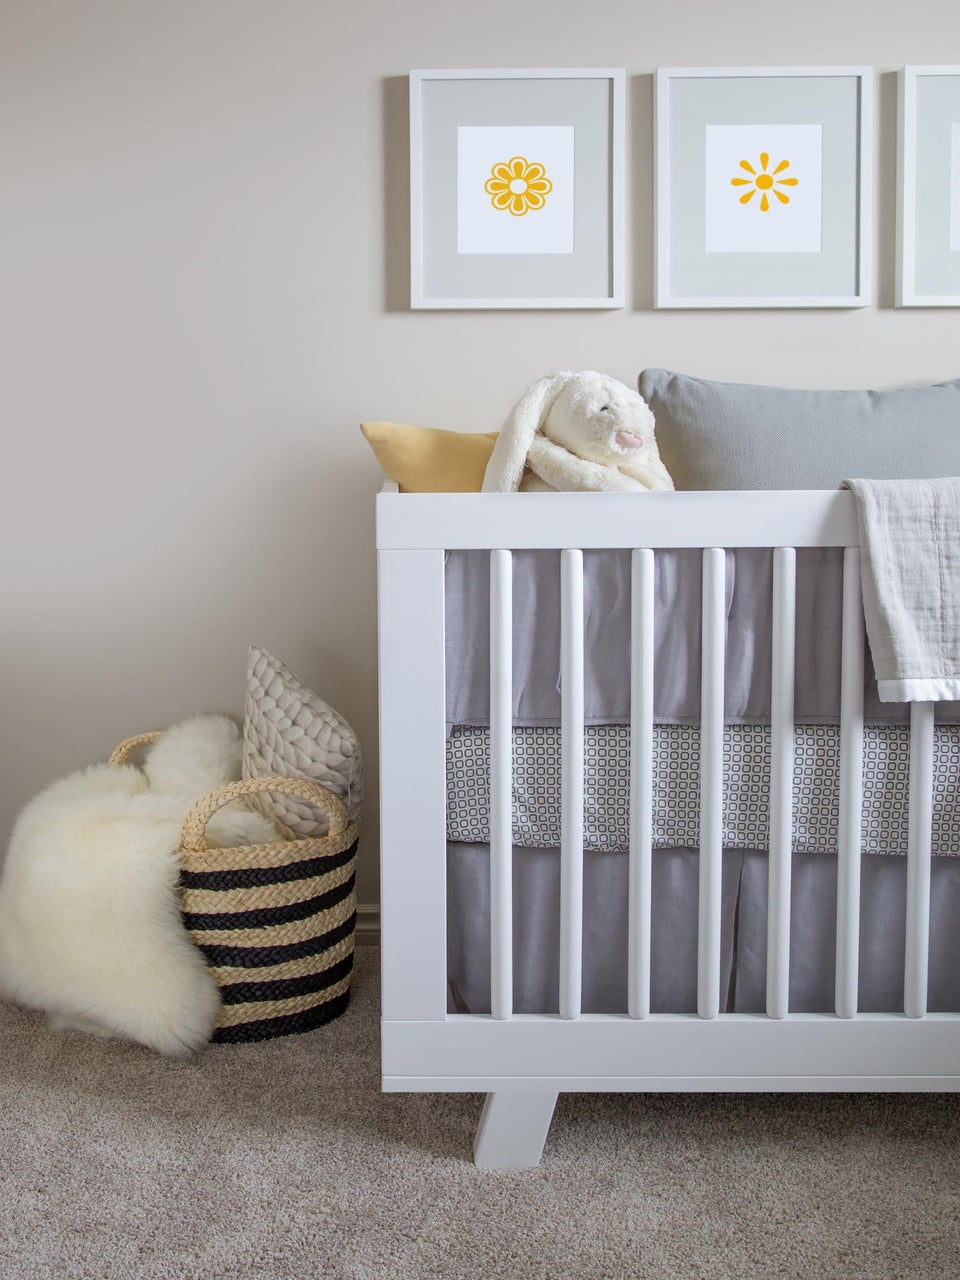 11 Tips To Decorating a Nursery Without Breaking The Bank